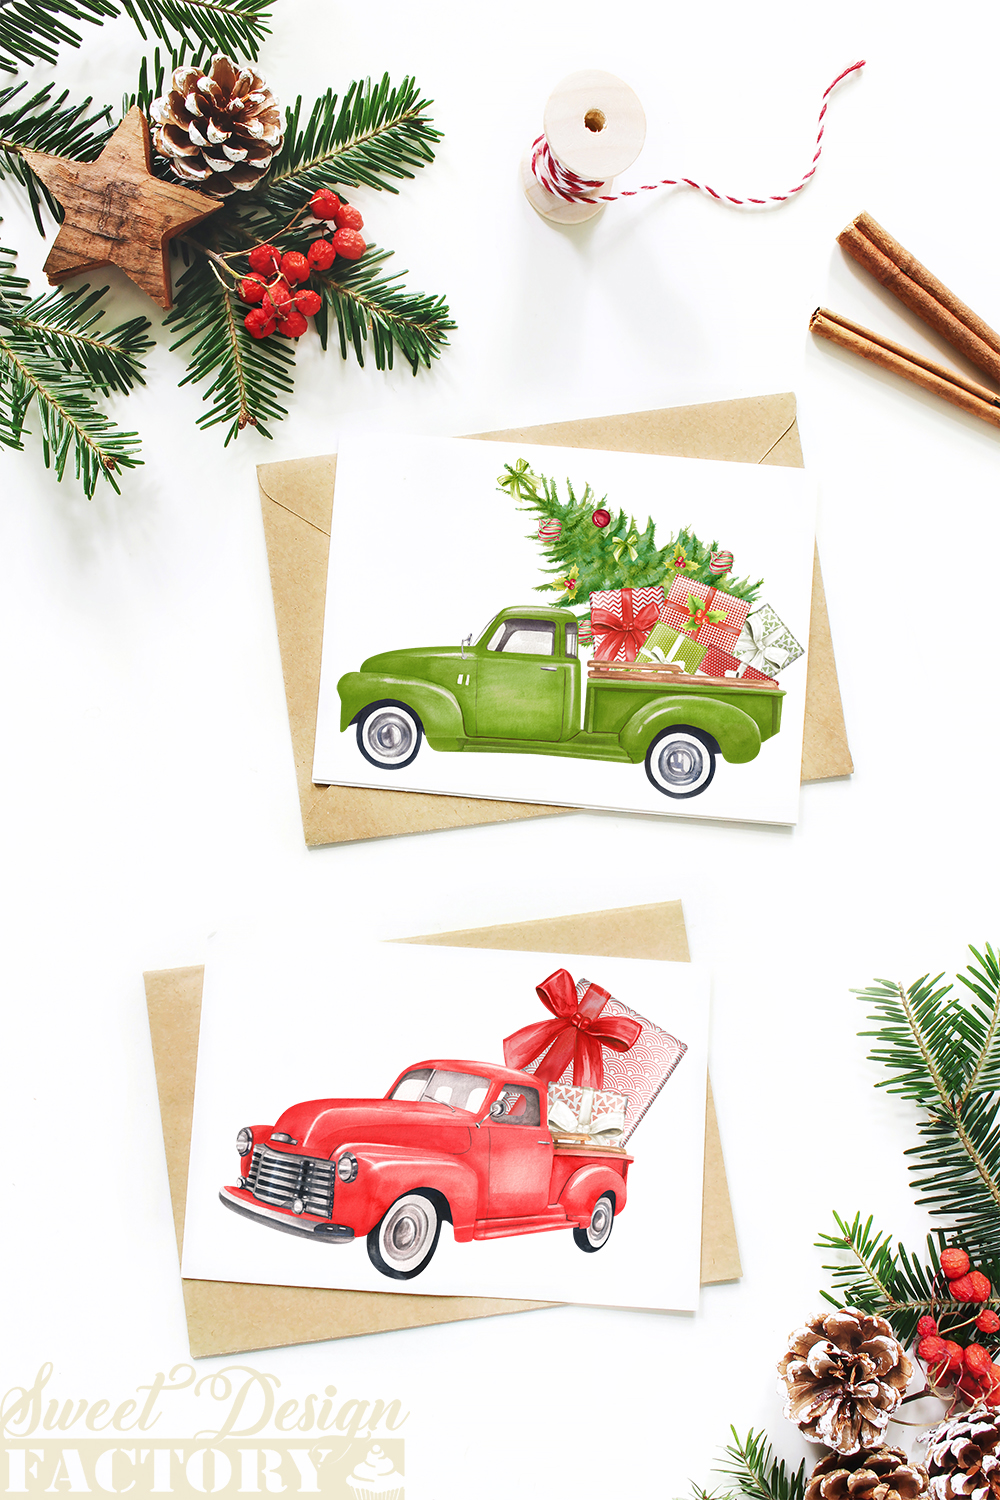 Watercolor Christmas retro truck clipart example image 7